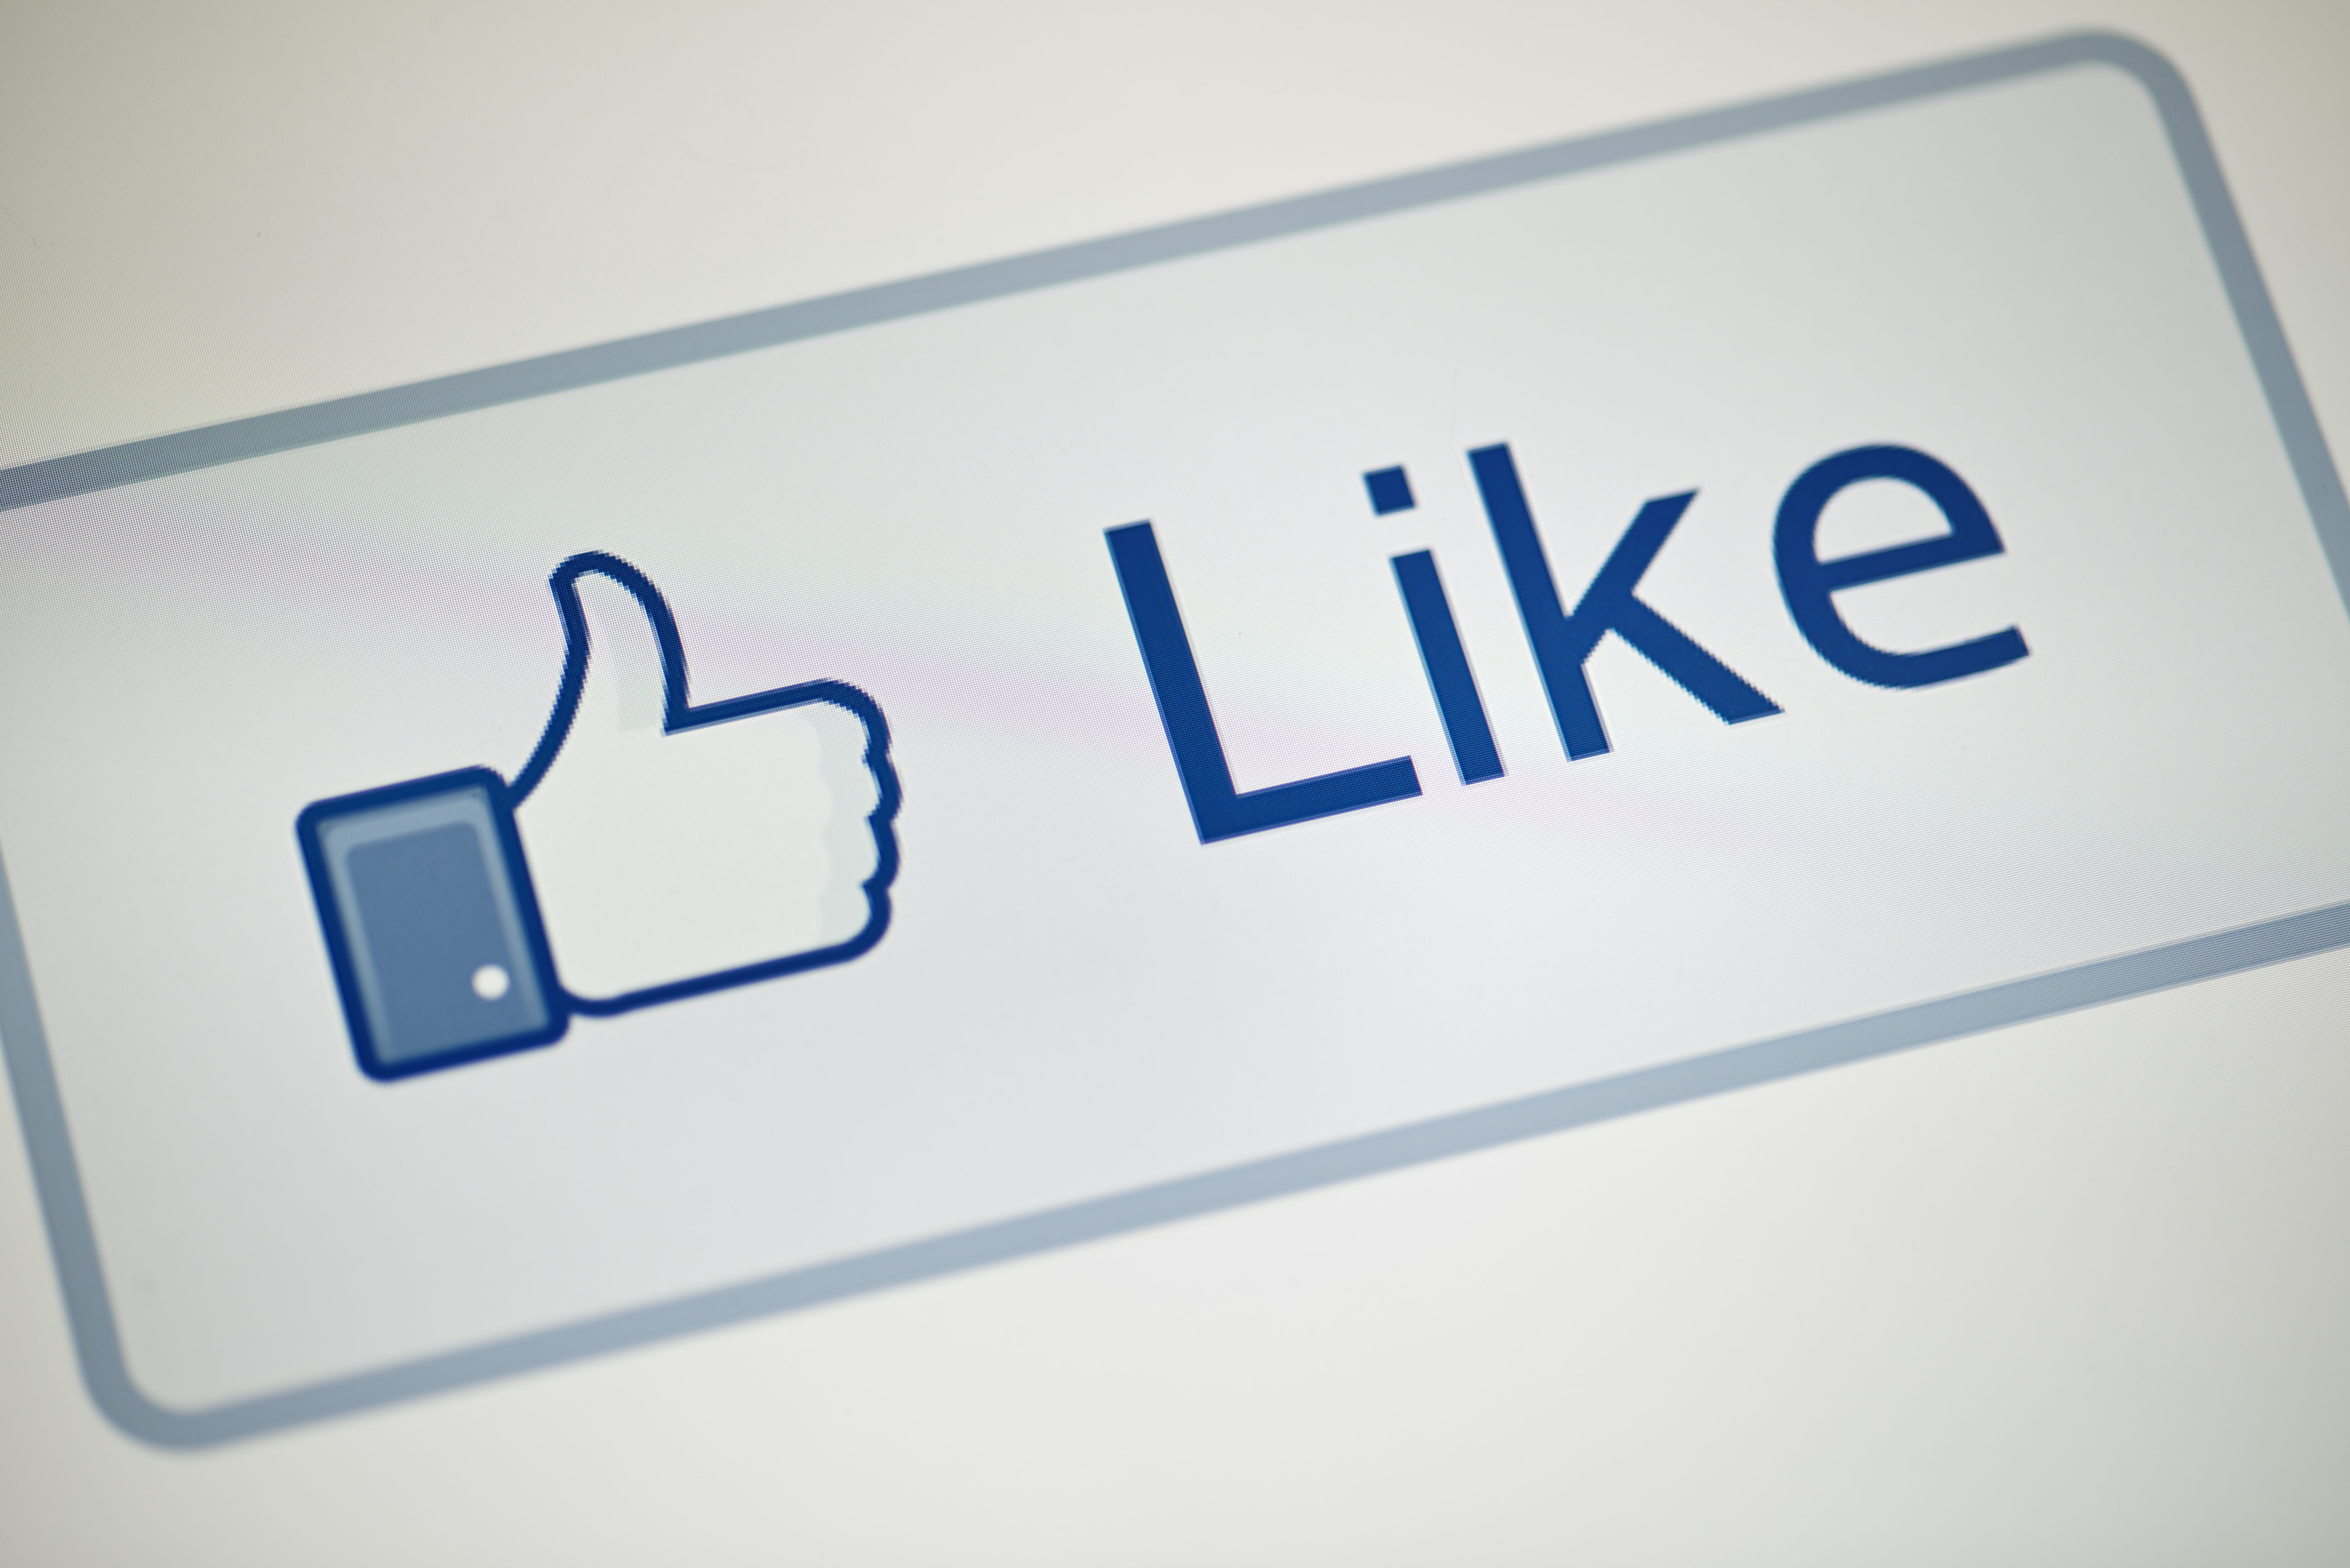 How The Facebook Like Button Has Changed Through The Years